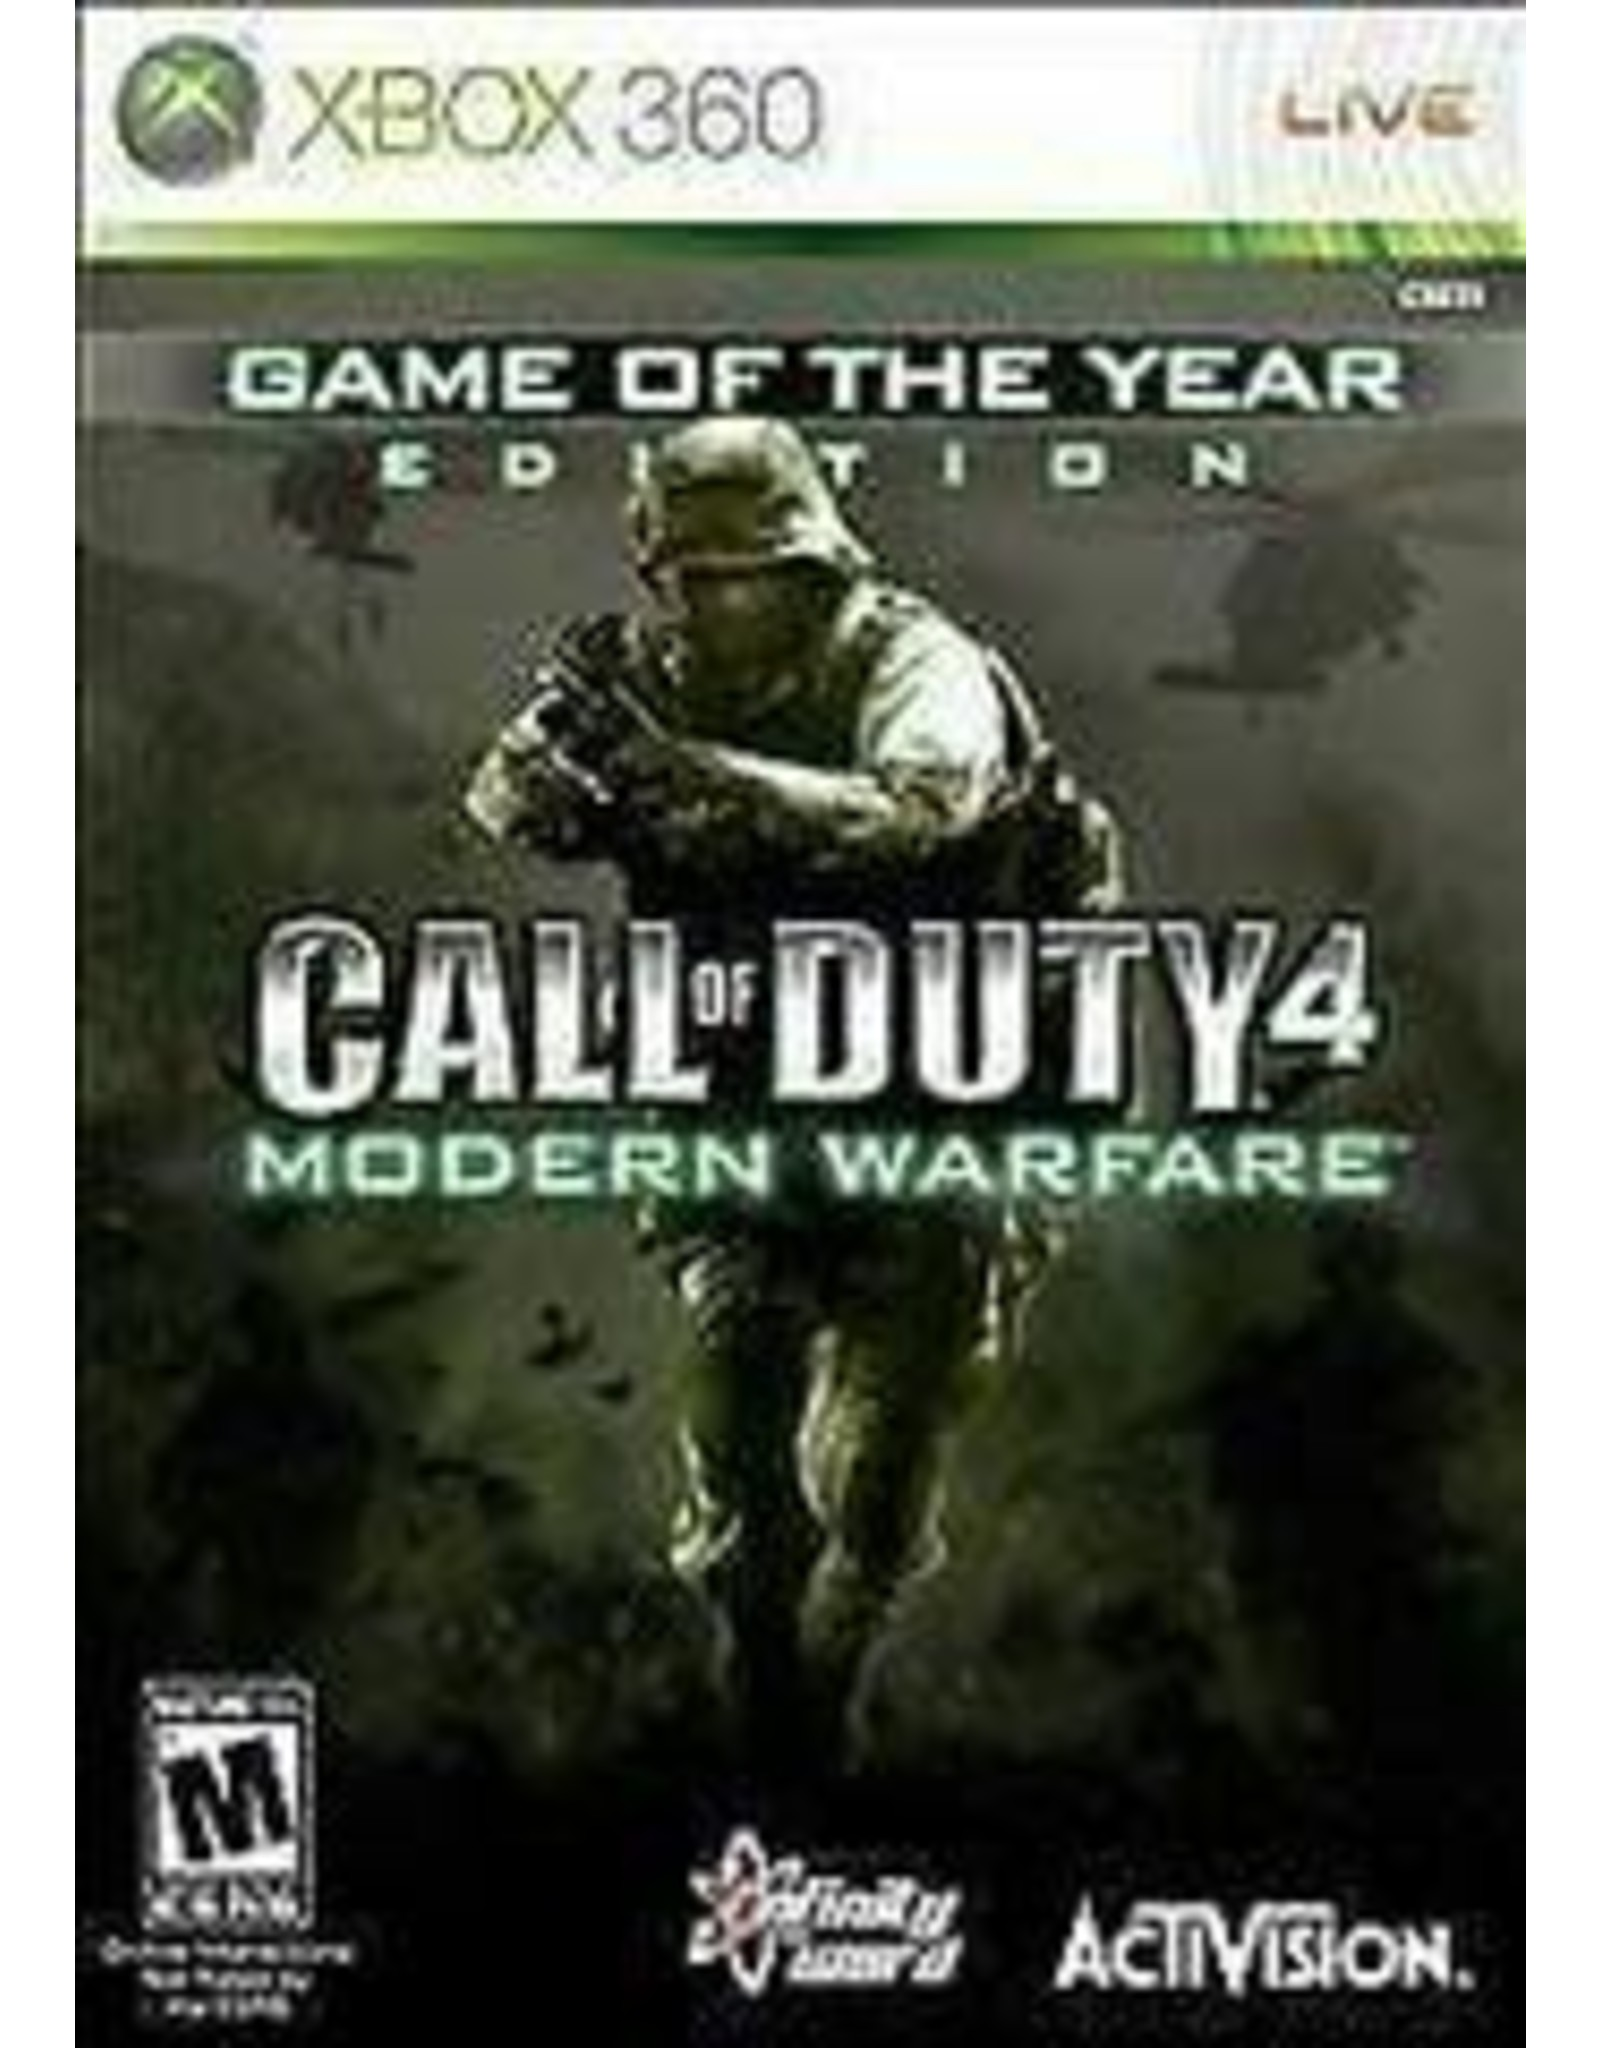 Xbox 360 Call of Duty 4 Modern Warfare Game of the Year Edition (CiB)